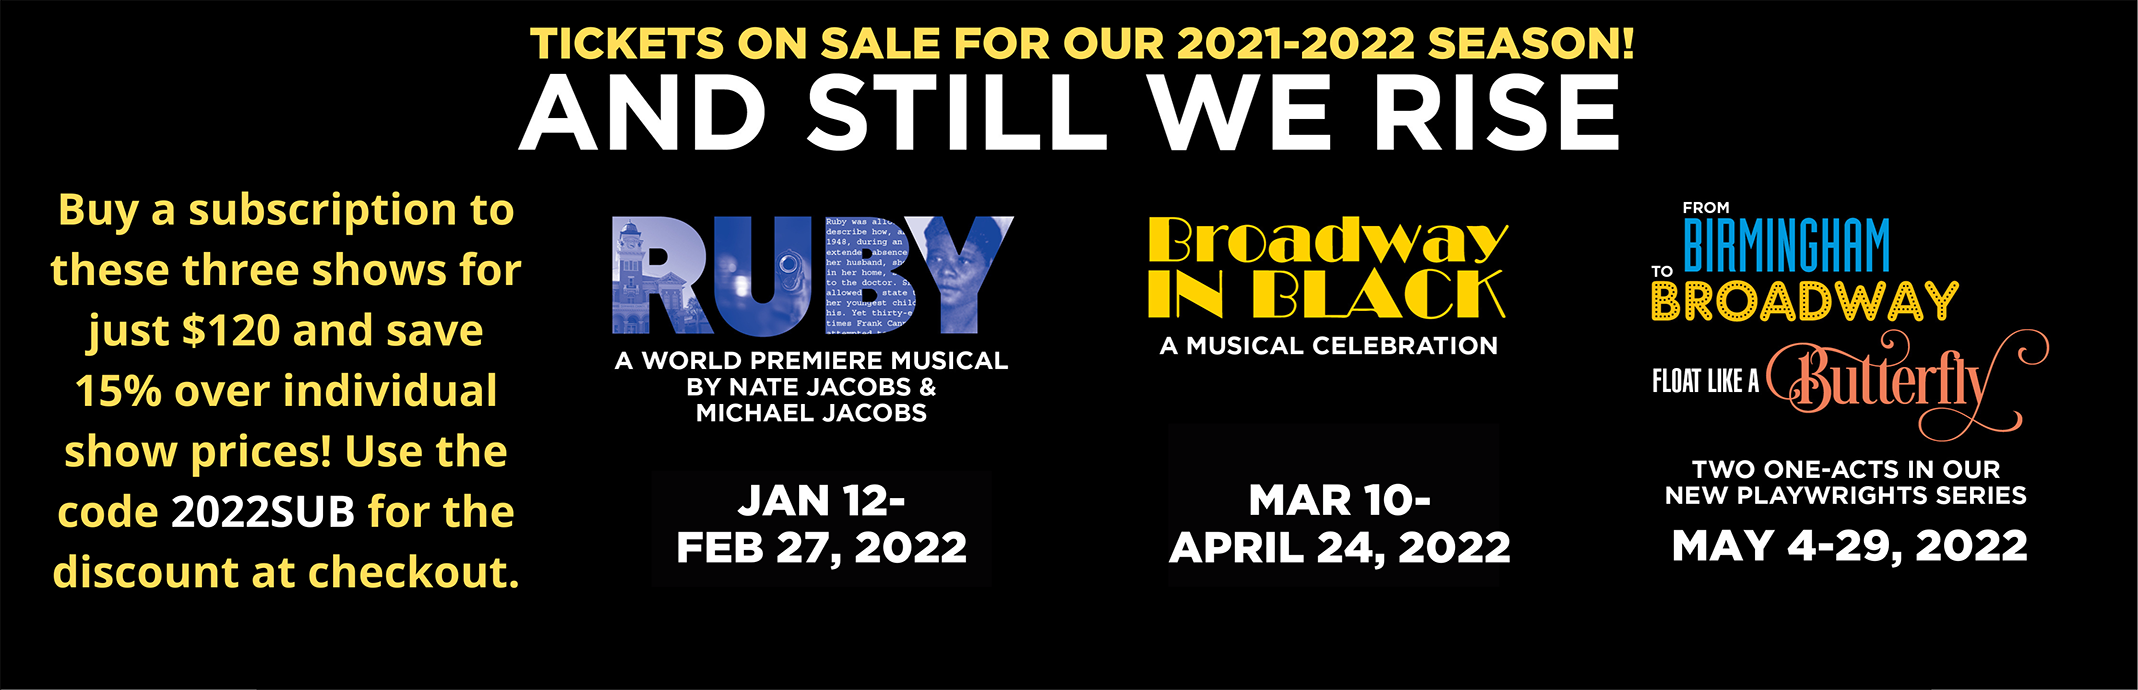 Tickets On Sale for Our 2021-2022 Season!